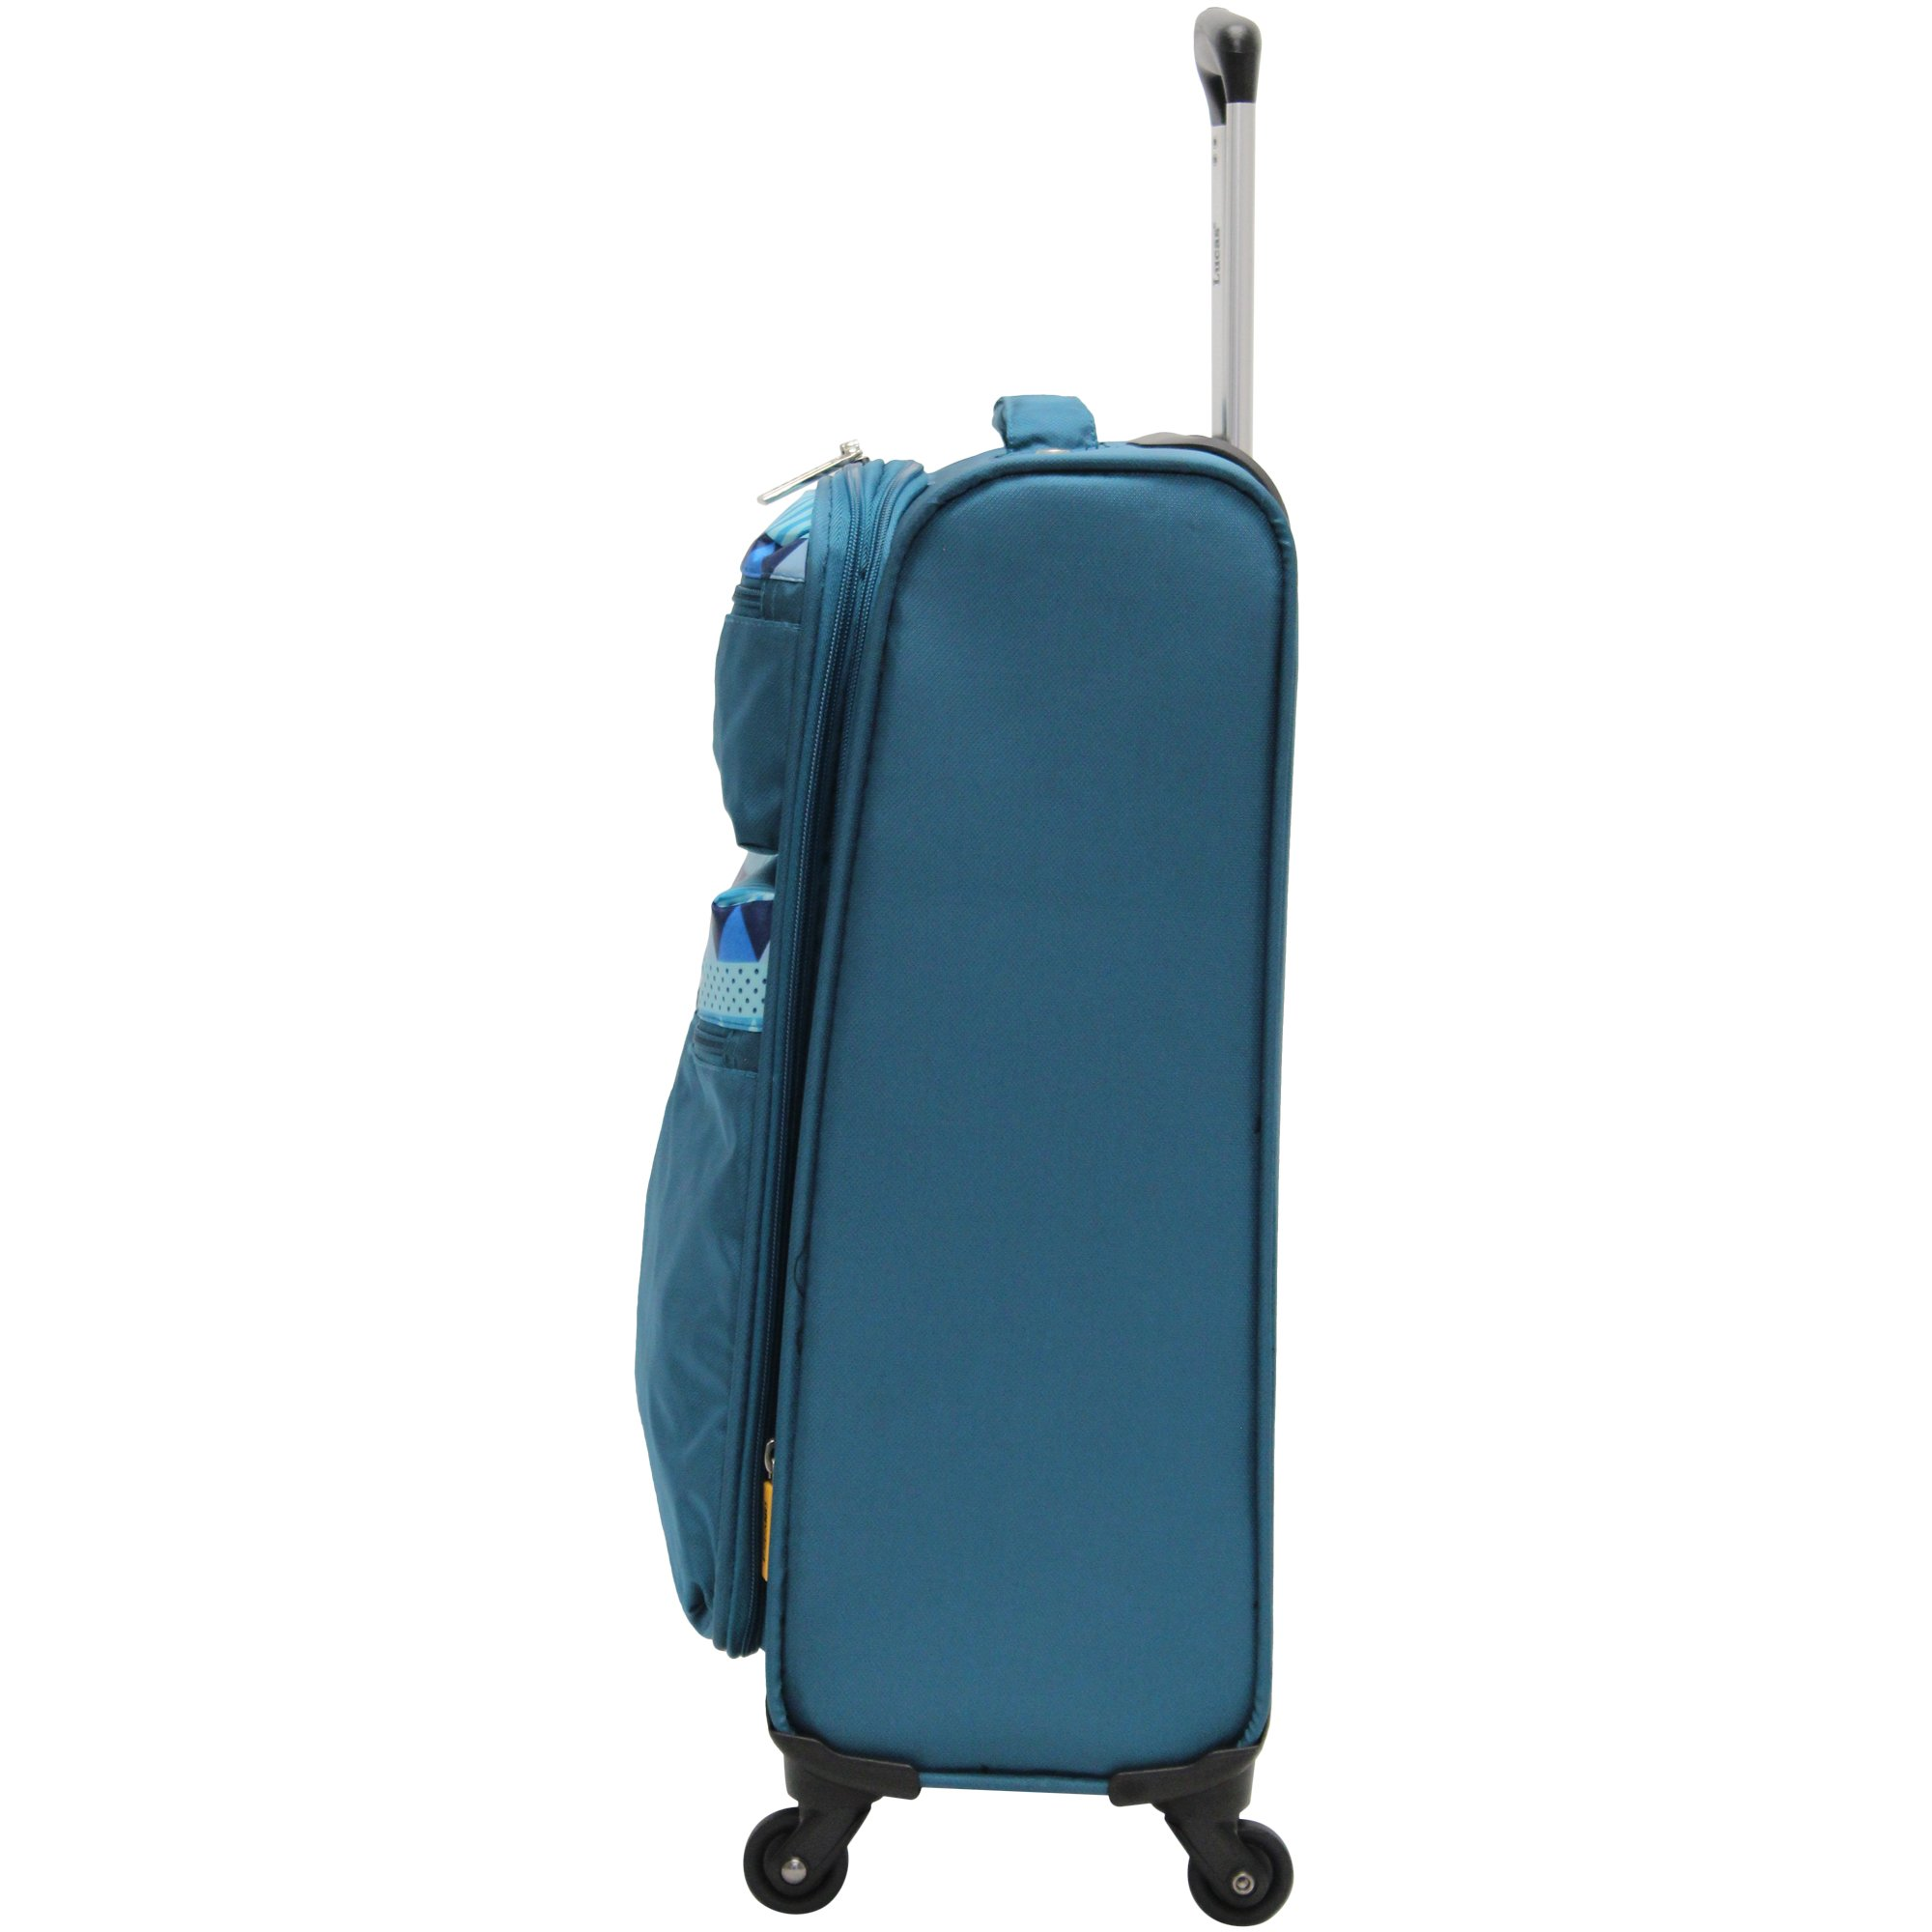 Lucas Luggage Ultra Lightweight Carry On 20 inch Expandable Suitcase With Spinner Wheels (20in, Teal) by Lucas (Image #2)